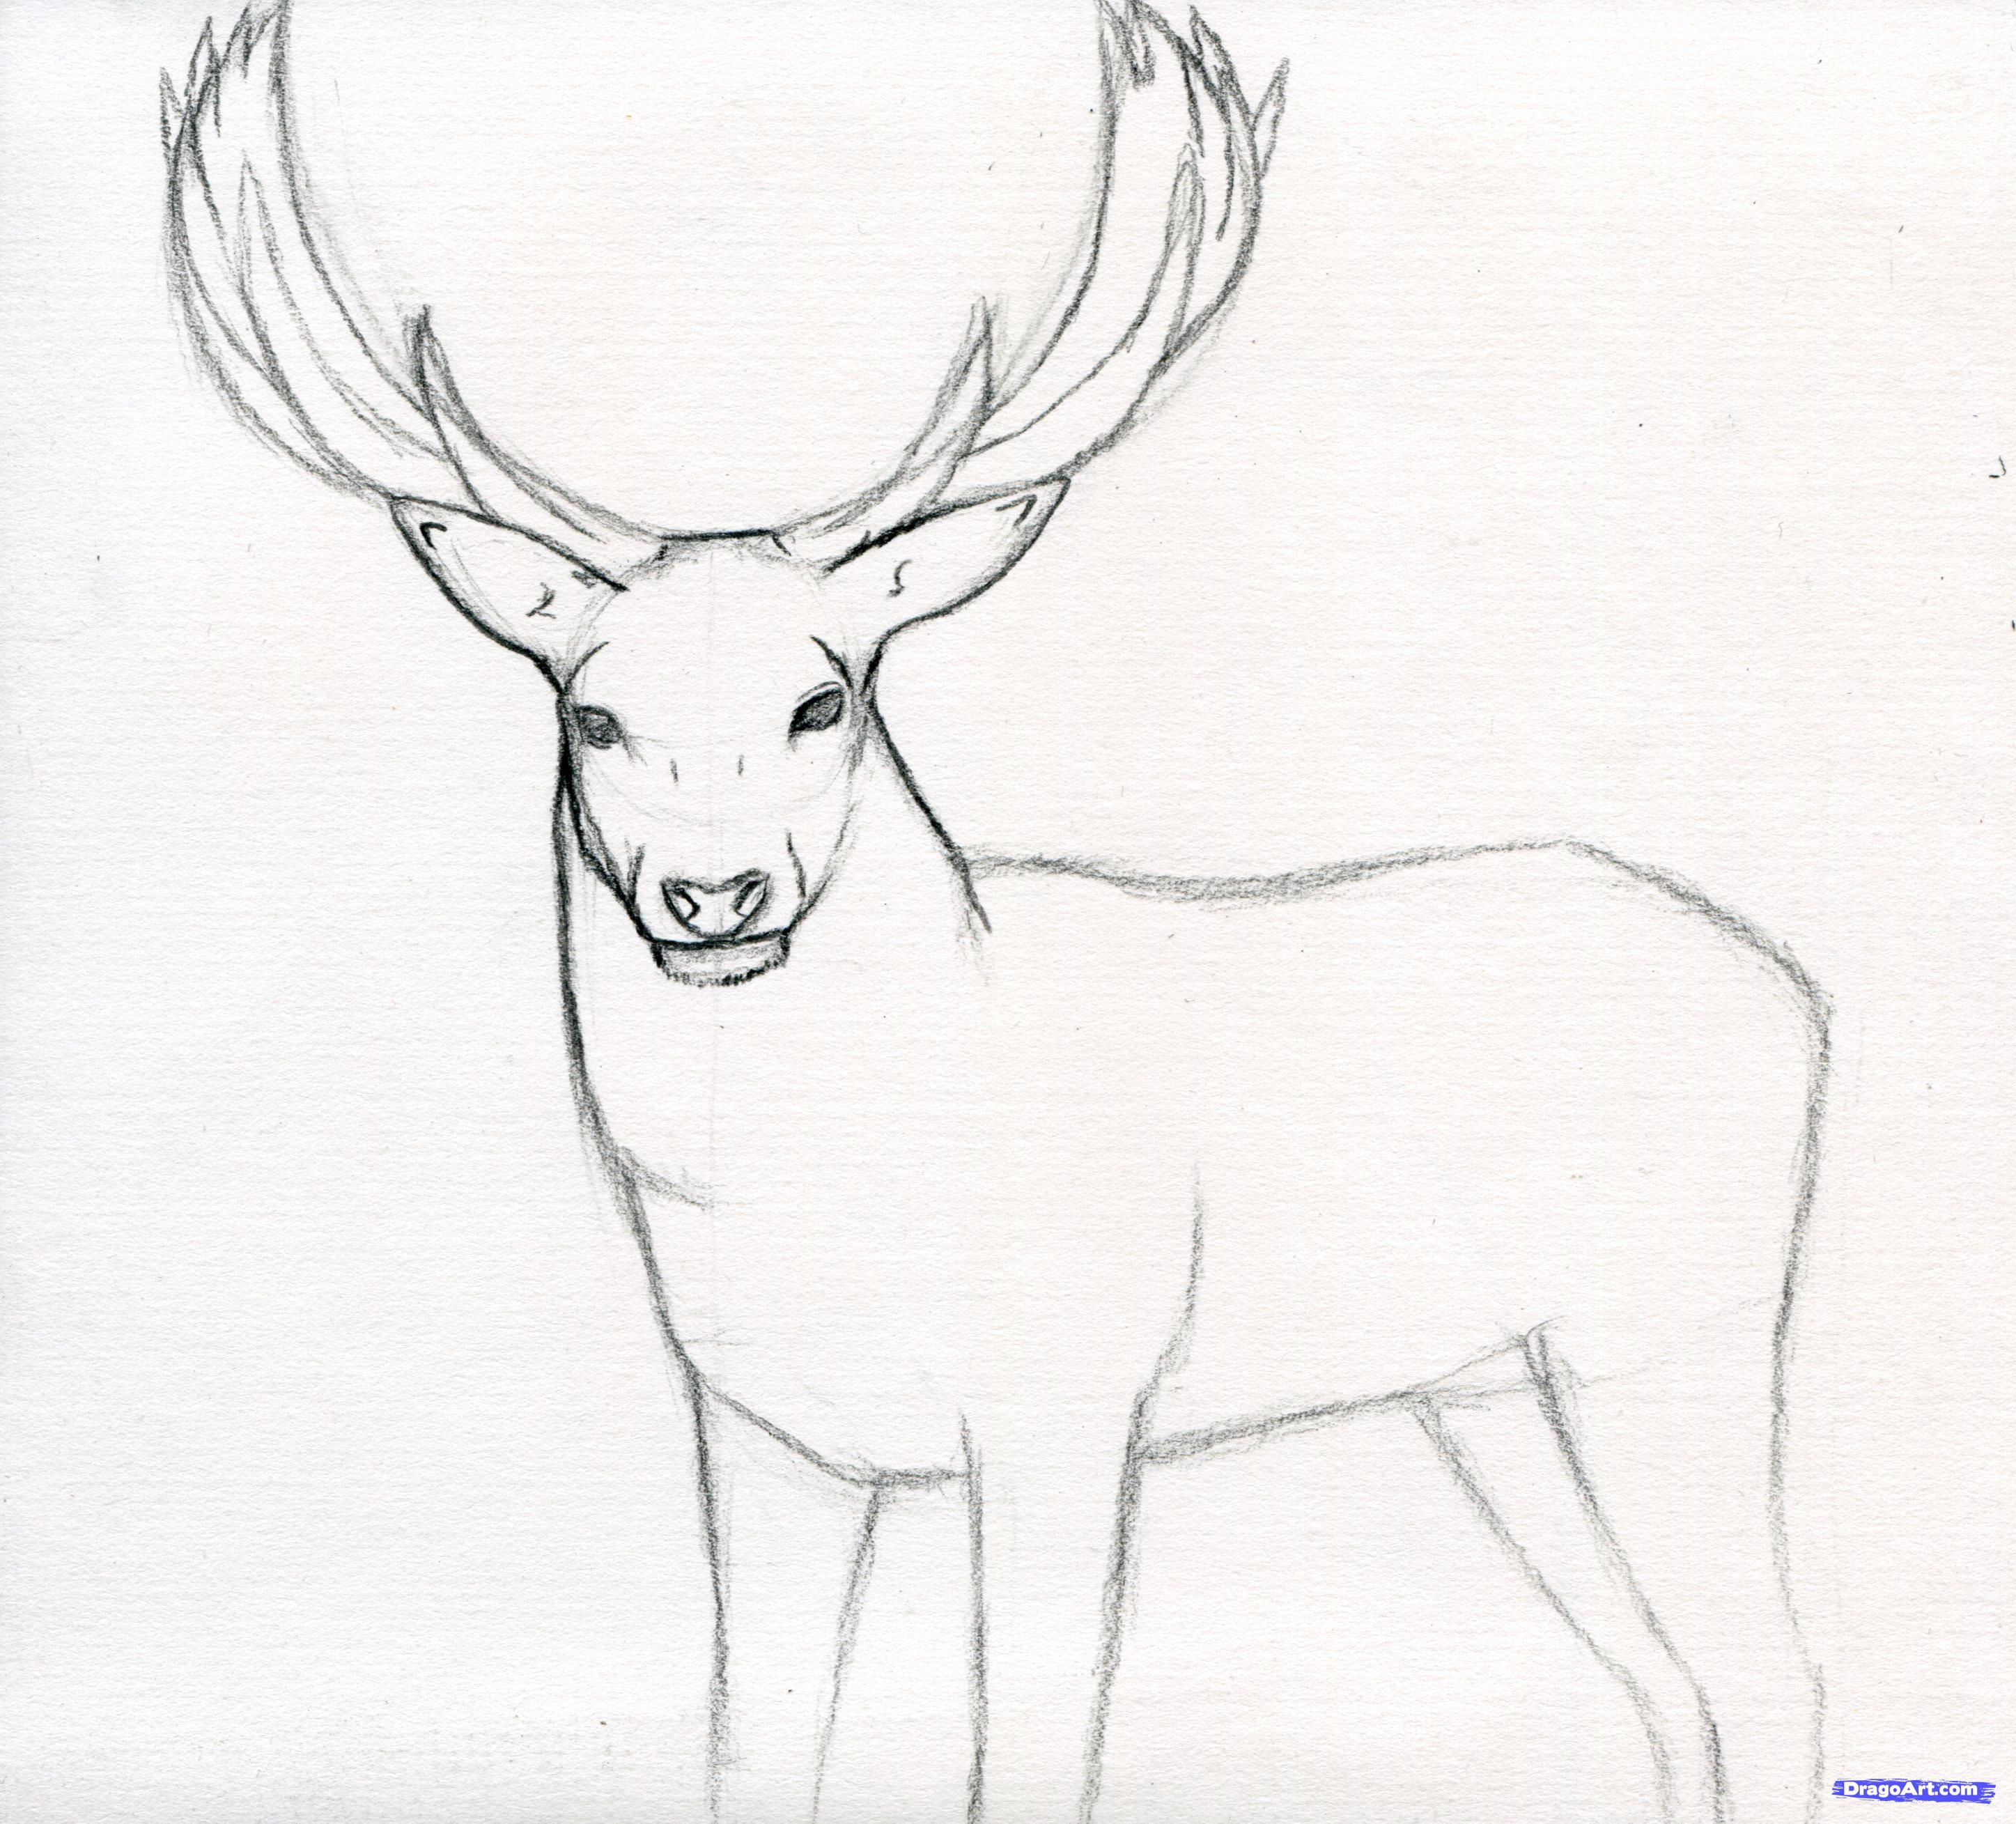 Drawn stag deer drawing Trend To How of Download